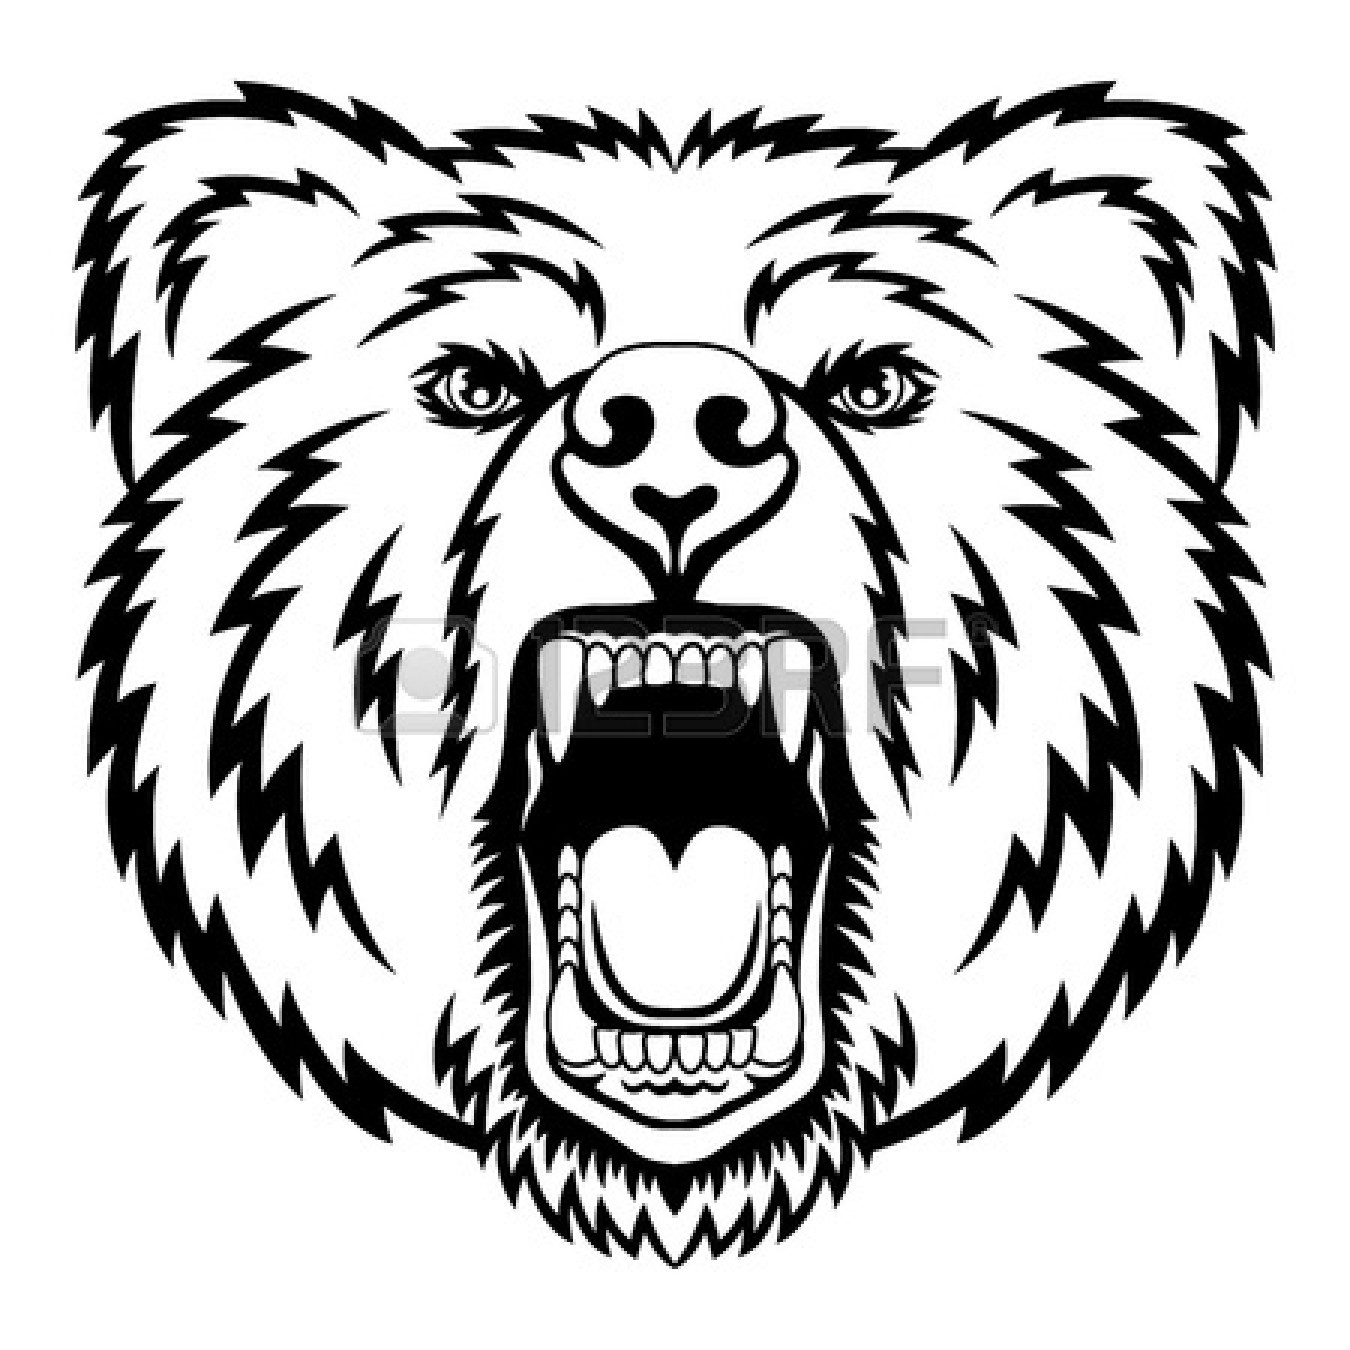 1350x1350 Drawing A Bear Face How To Draw Grizzly Bear Drawing Image Gallery